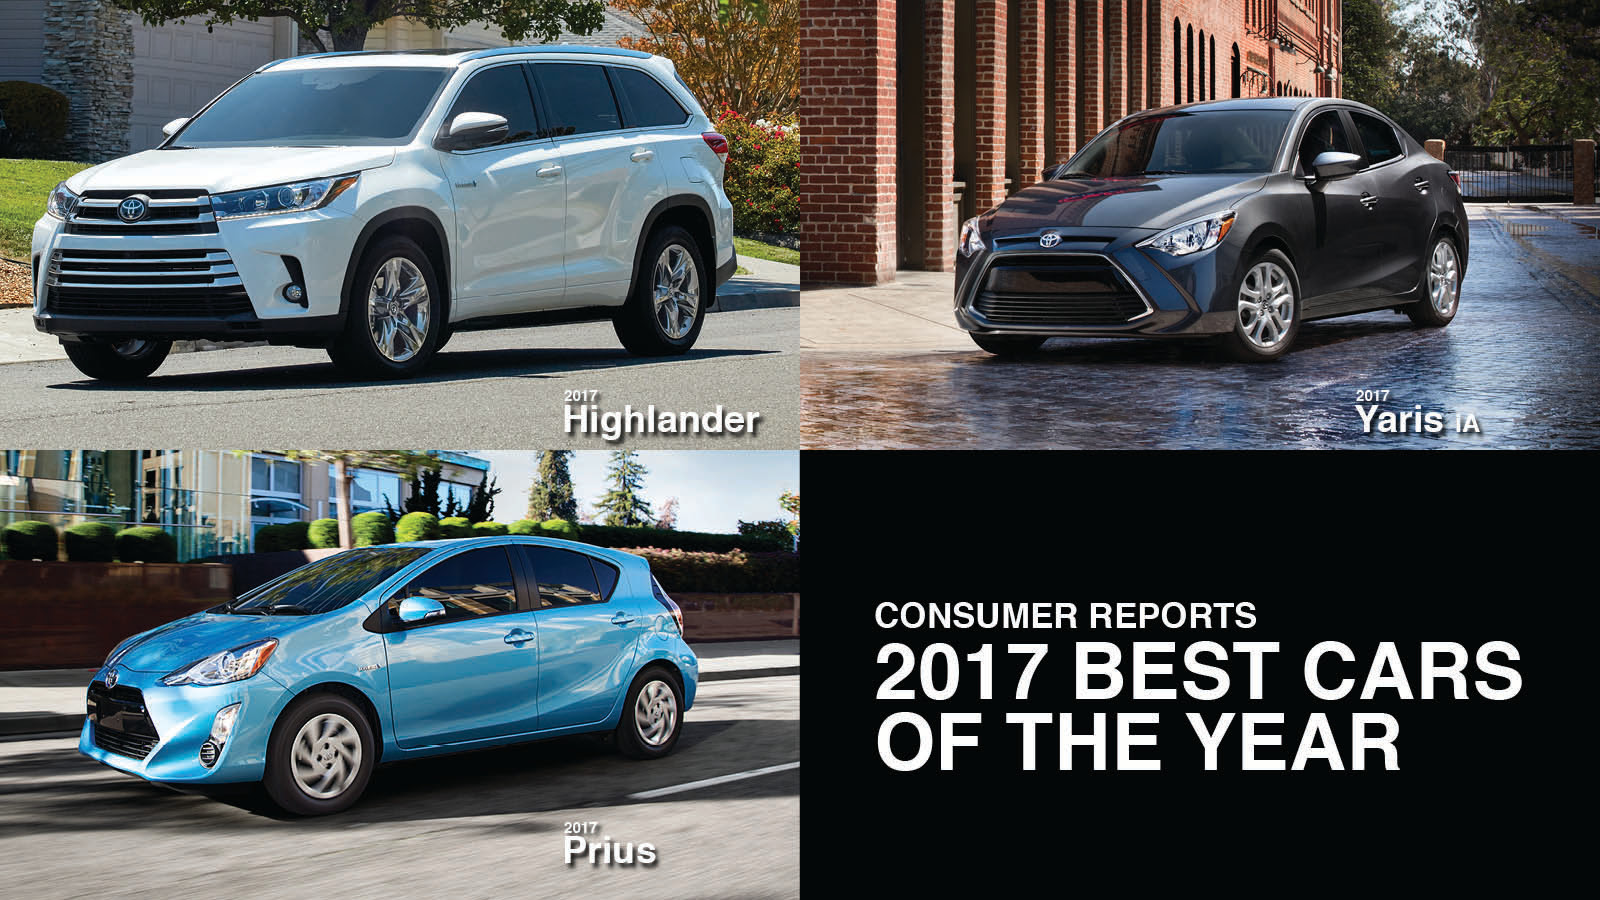 Consumer Reports Names 3 Toyotas To 2017 Best Cars Of The Year List